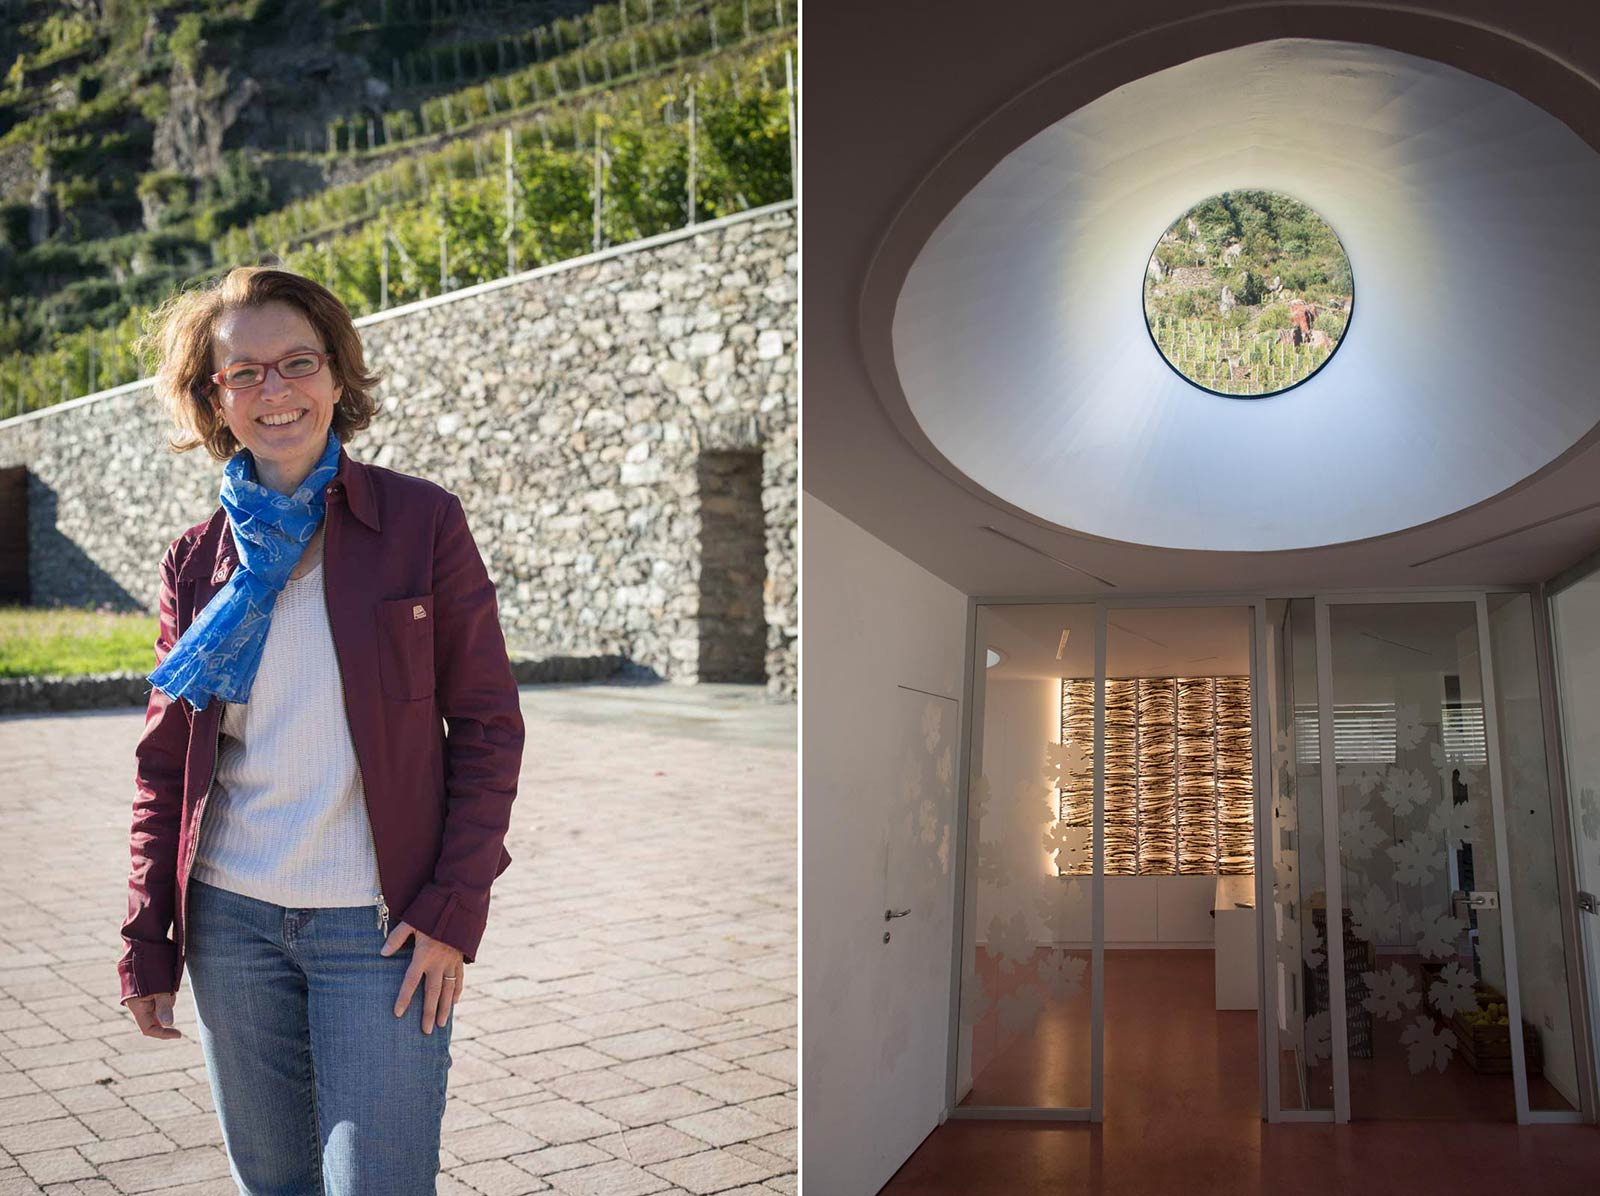 ARPEPE's enologist, Isabella Pelizzatti Perego (left); and the view from inside the winery and tasting room, which her husband designed (right). ©Kevin Day/Opening a Bottle